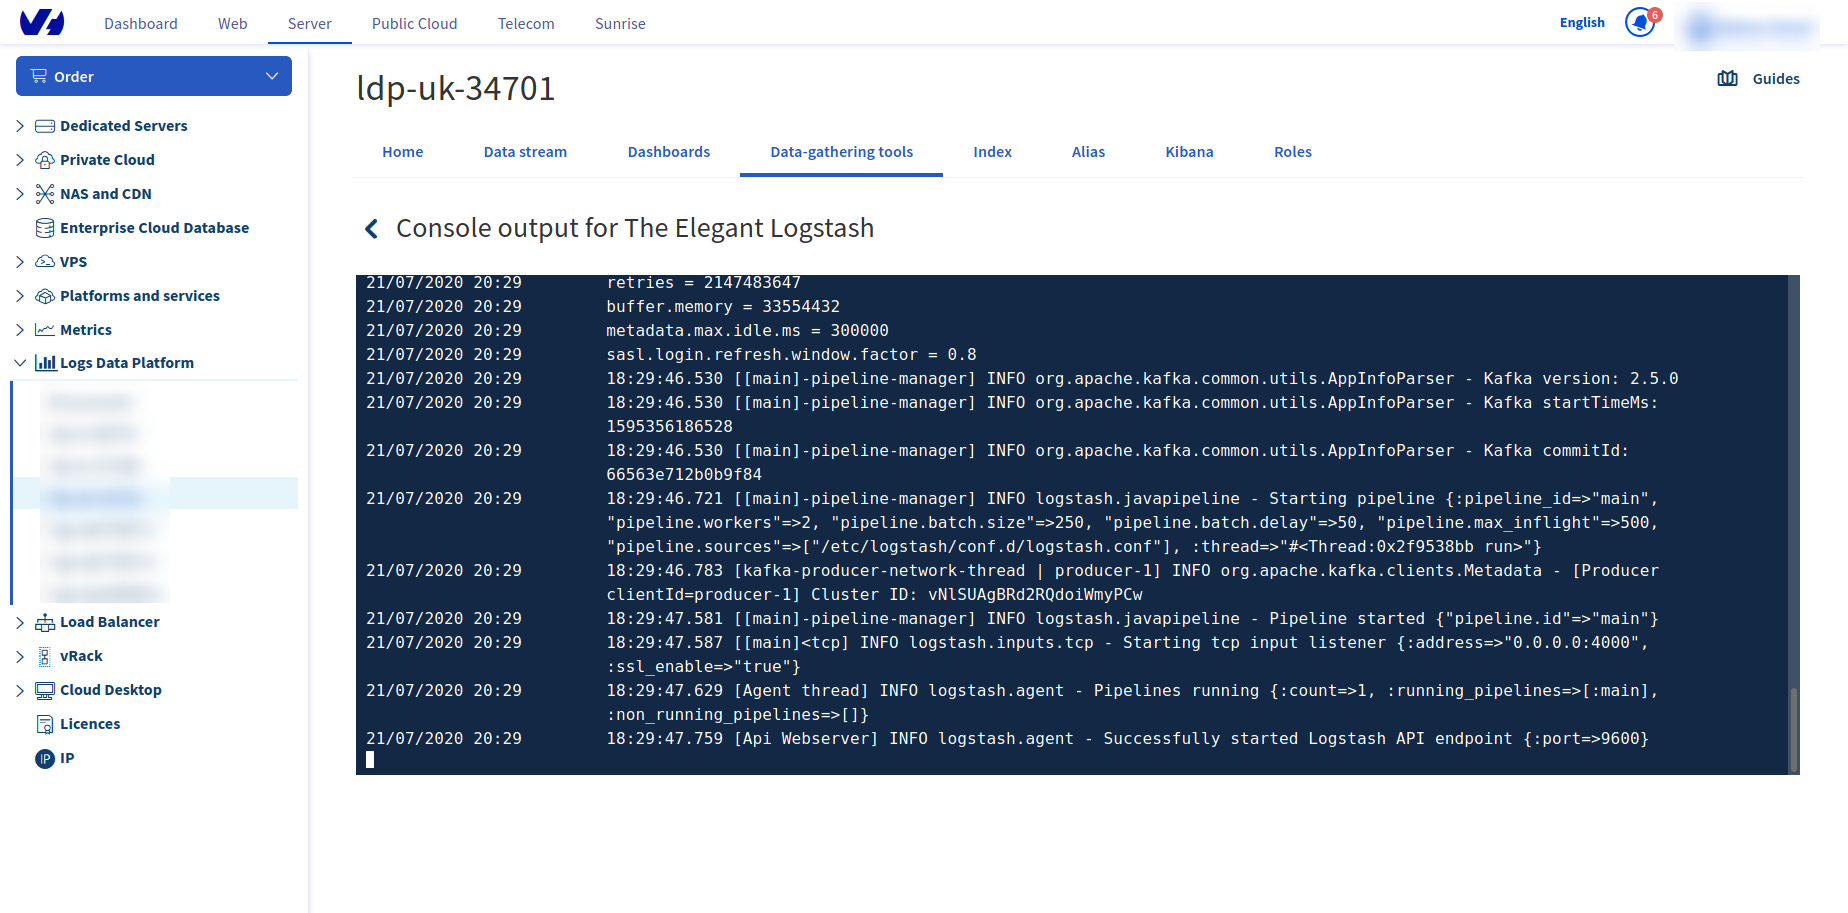 All you have to know about the Logstash Collector on Logs Data